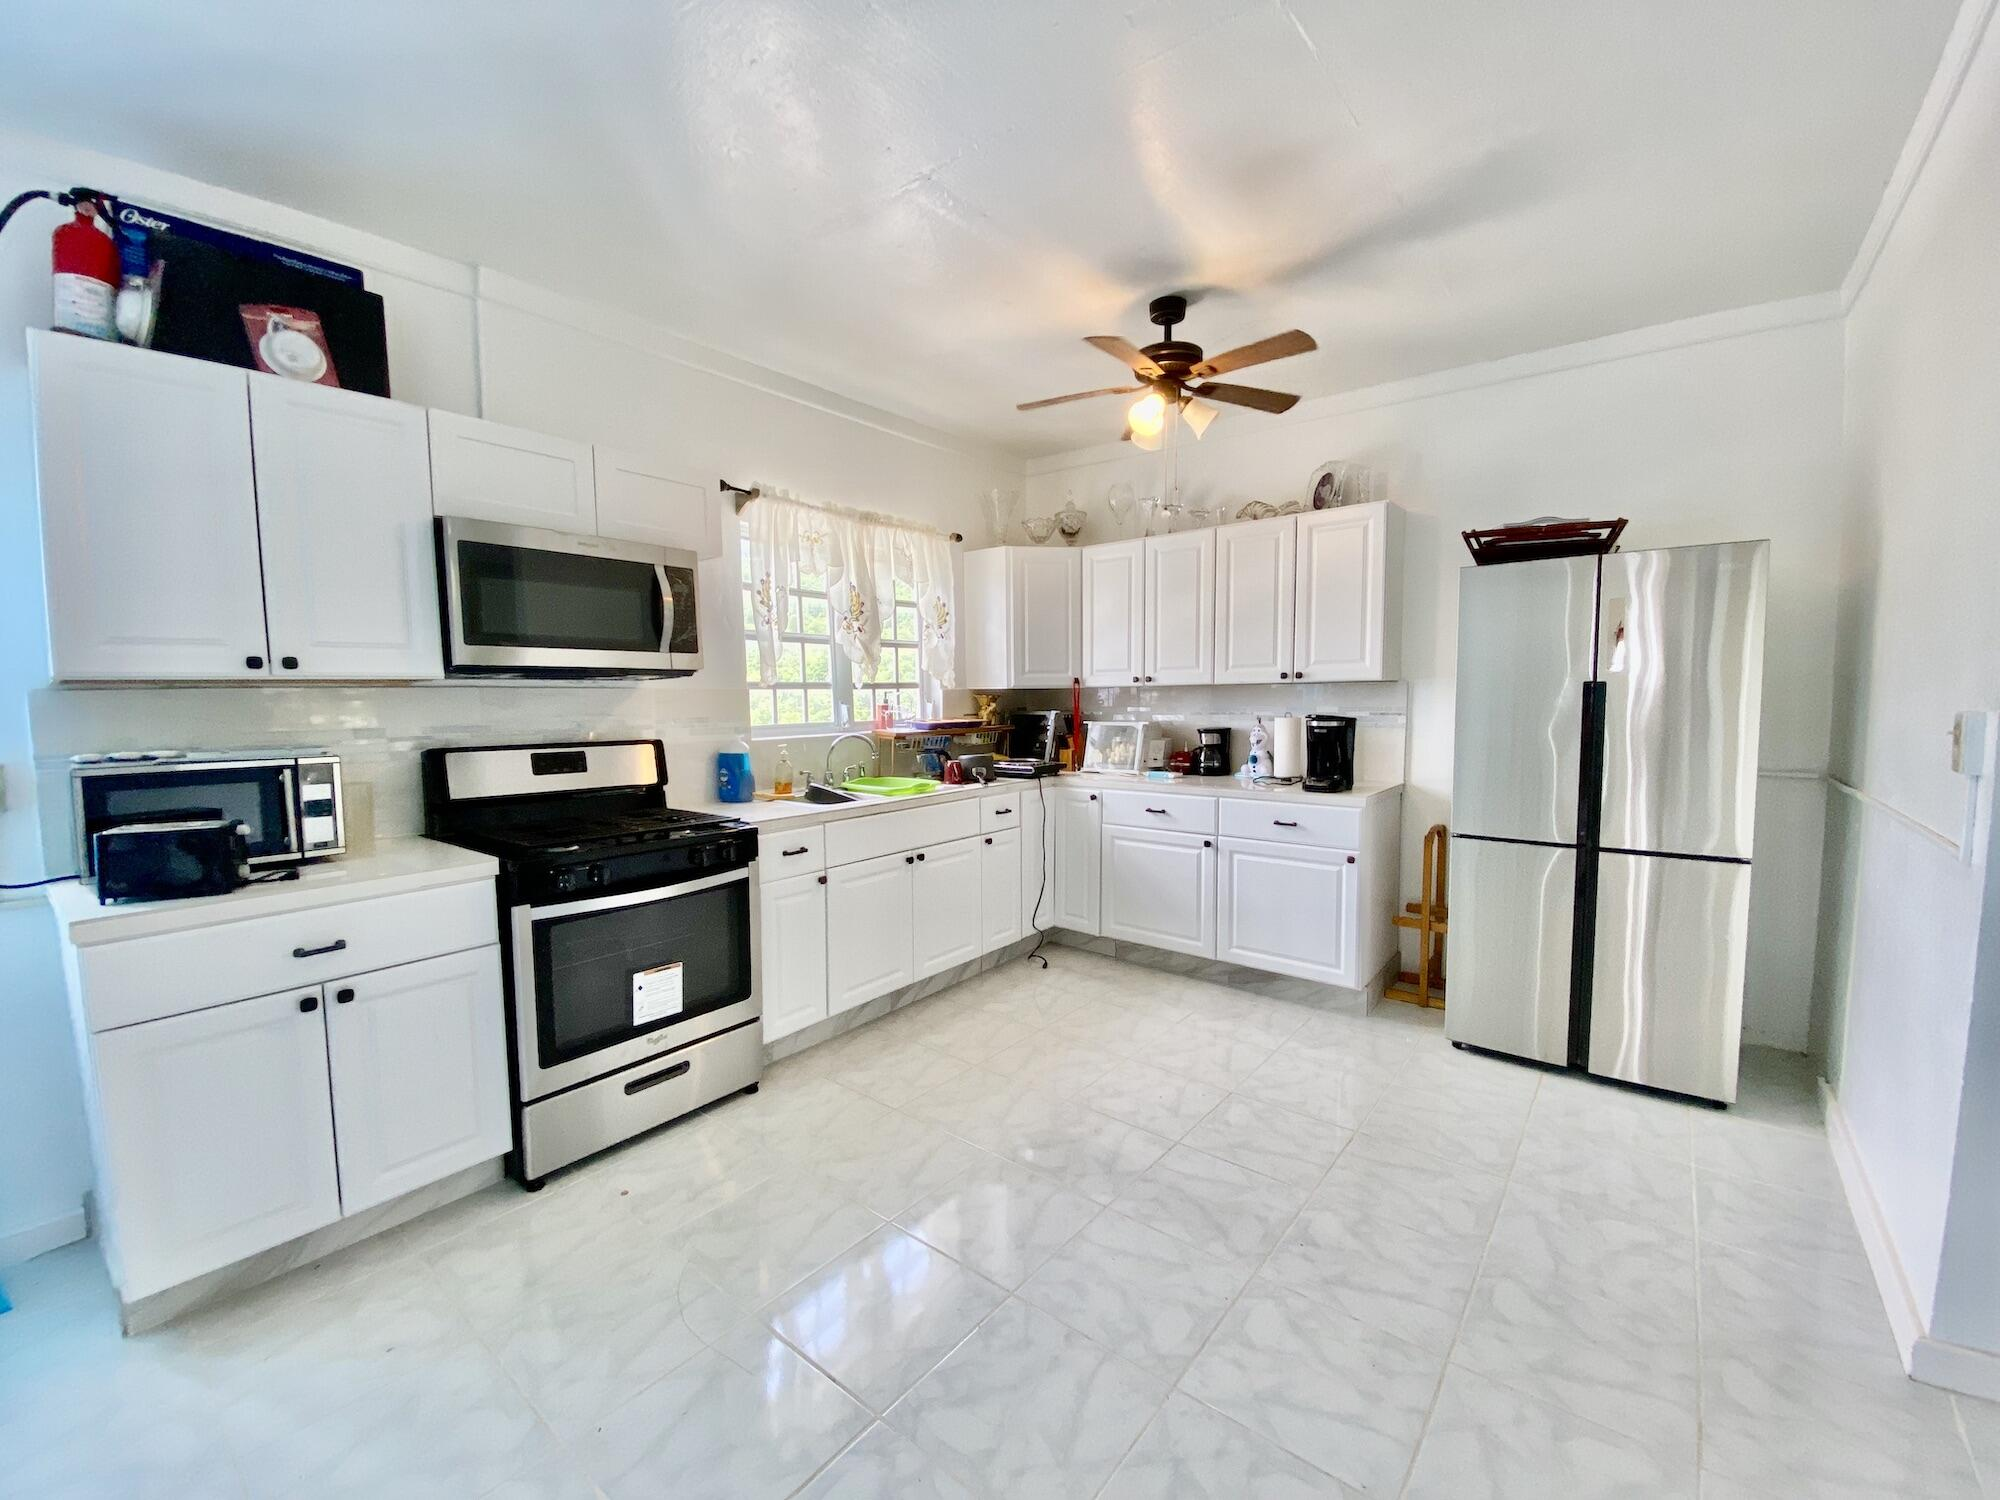 RE/MAX real estate, US Virgin Islands, Ross Estate, New Listing  Res Rental  Ross NEW